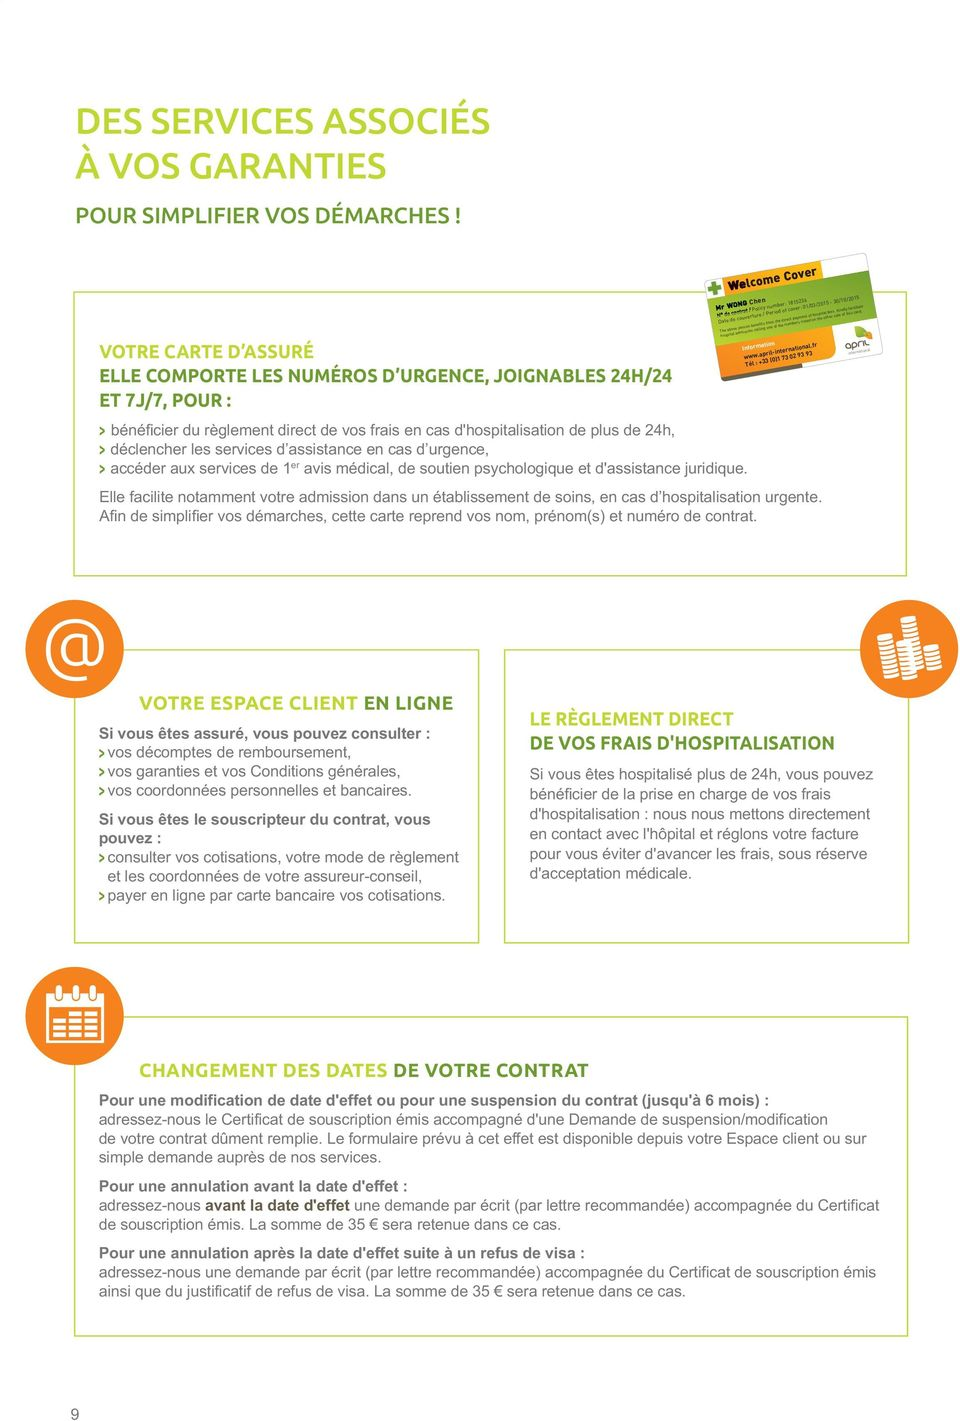 01/03/2015-30/10/2015 The above person benefits from the direct payment of hospital fees. Kindly facilitate hospital admission calling one of the numbers noted on the other side of this card.